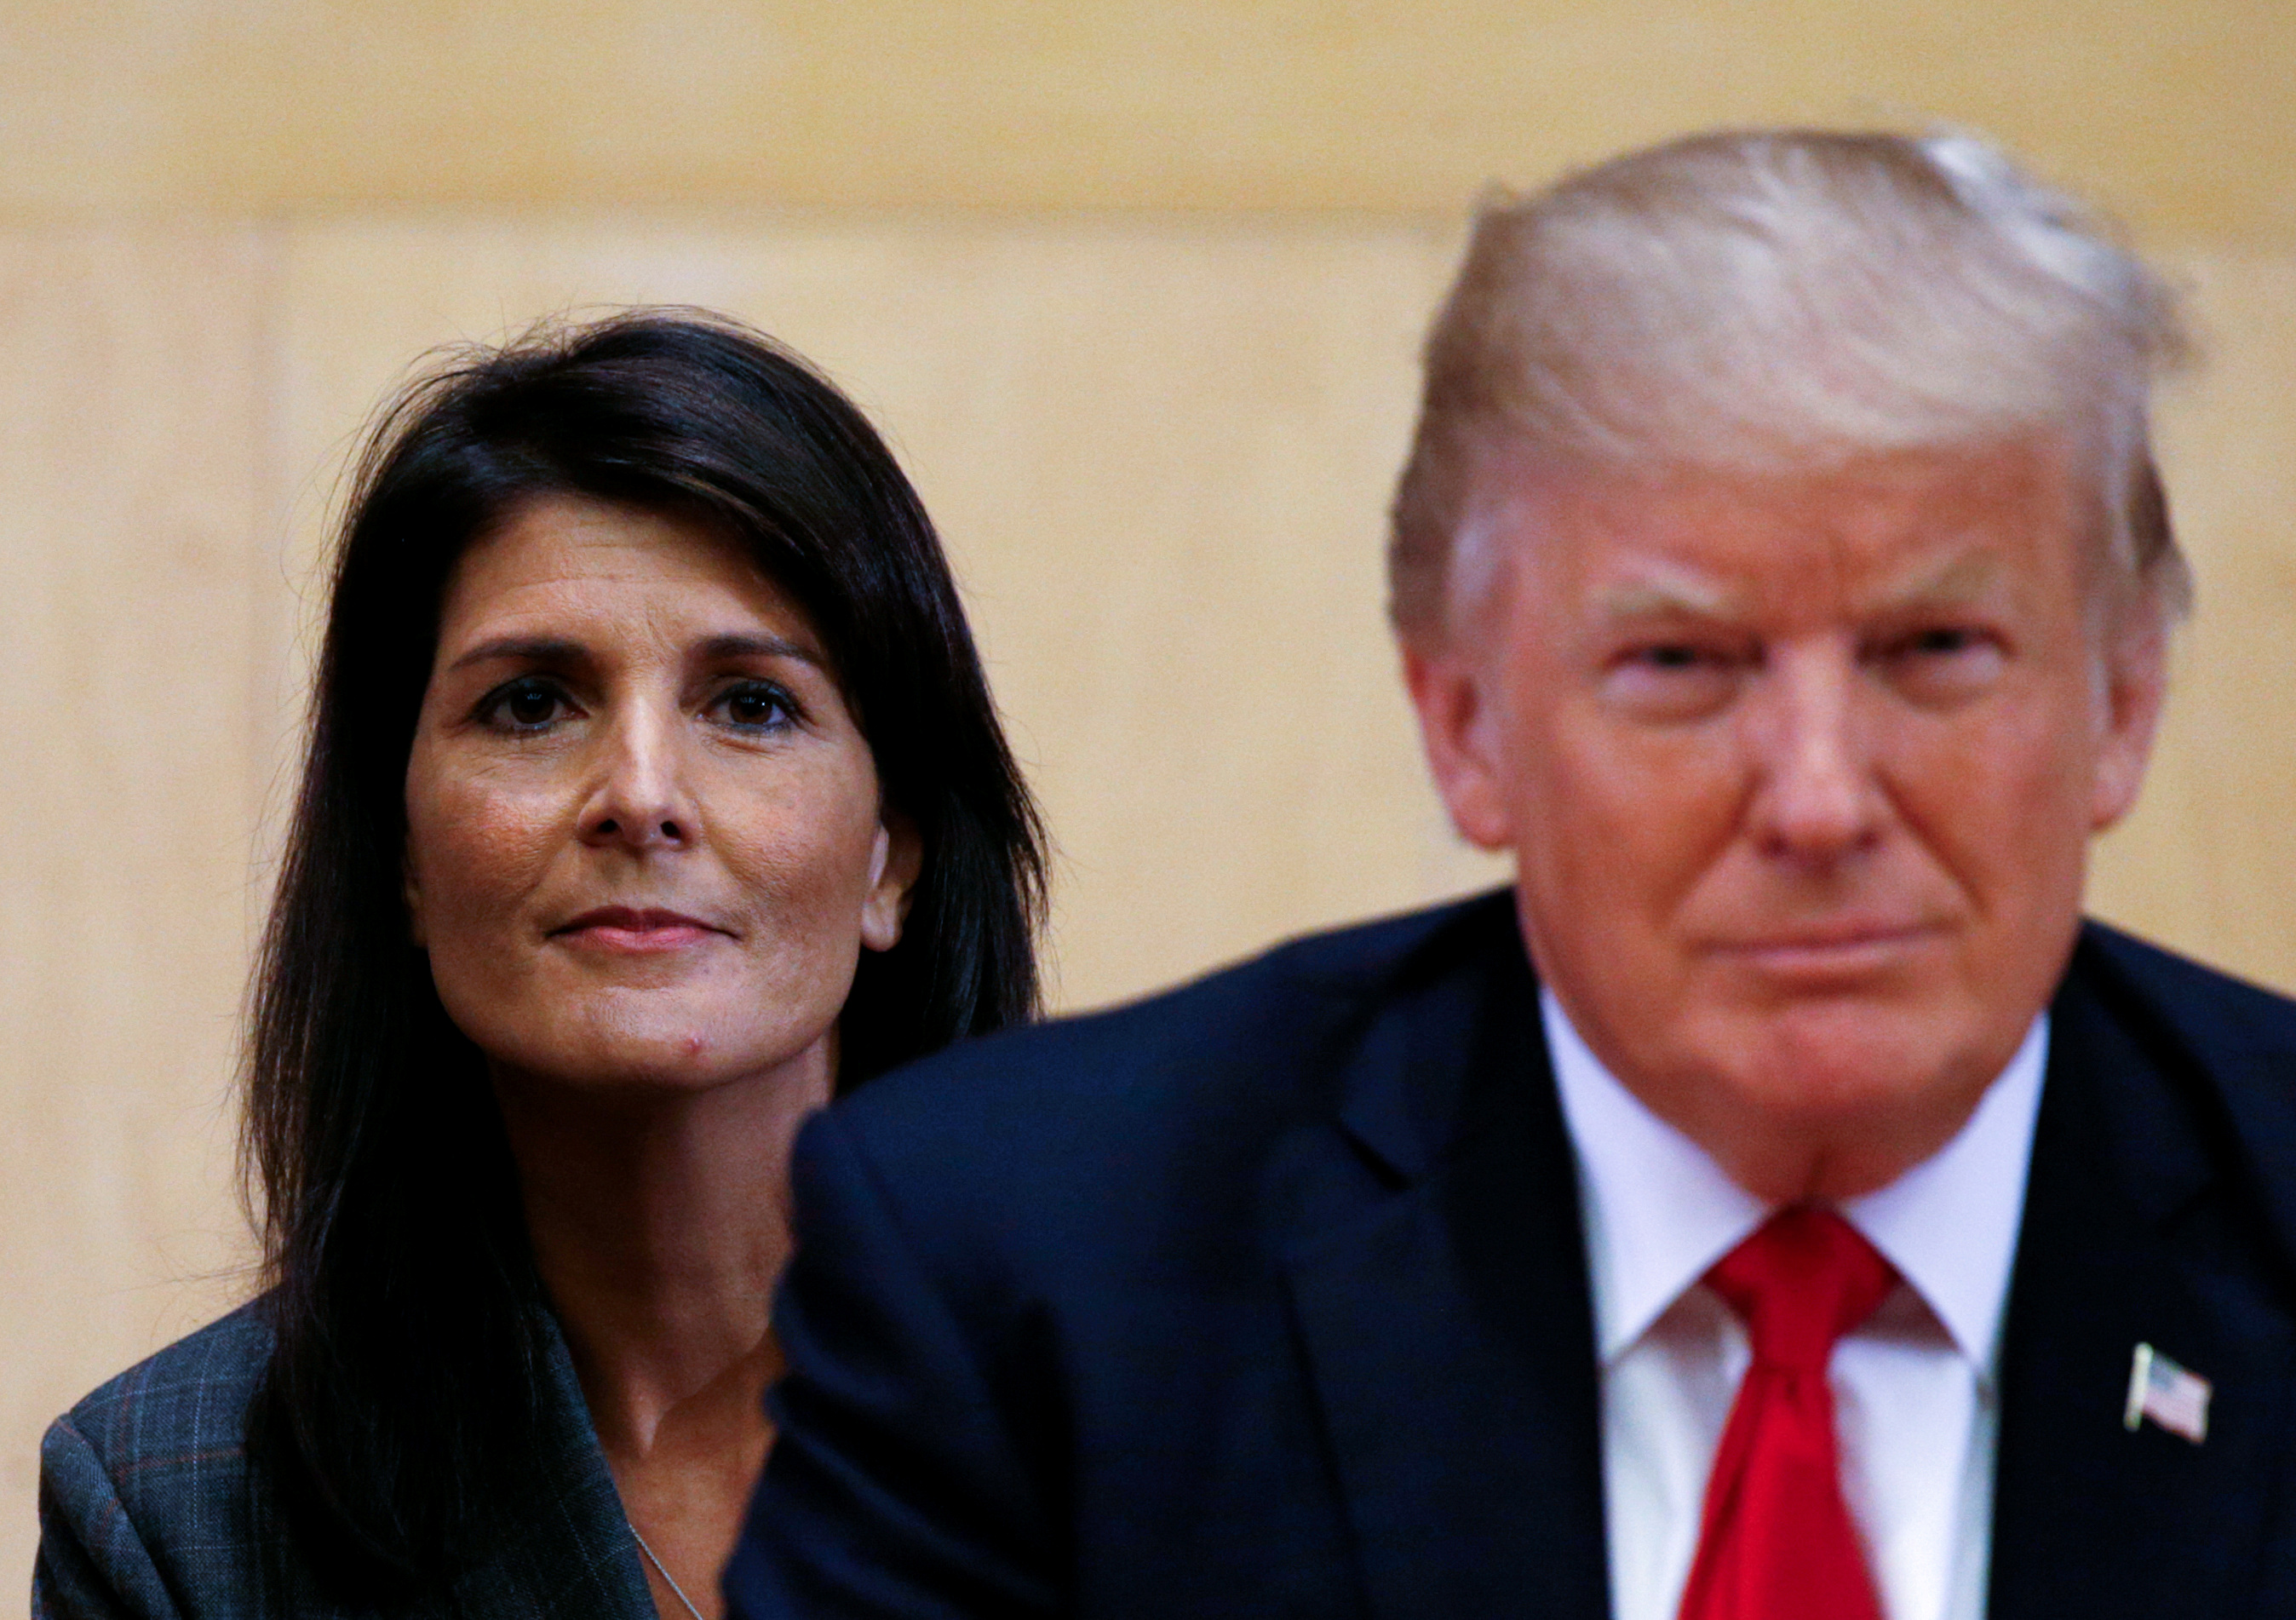 FILE PHOTO: U.S. Ambassador to the UN Nikki Haley (L) and U.S. President Donald Trump participate in a session on reforming the United Nations at UN Headquarters in New York, U.S., Sept.18, 2017. REUTERS/Kevin Lamarque/File Photo